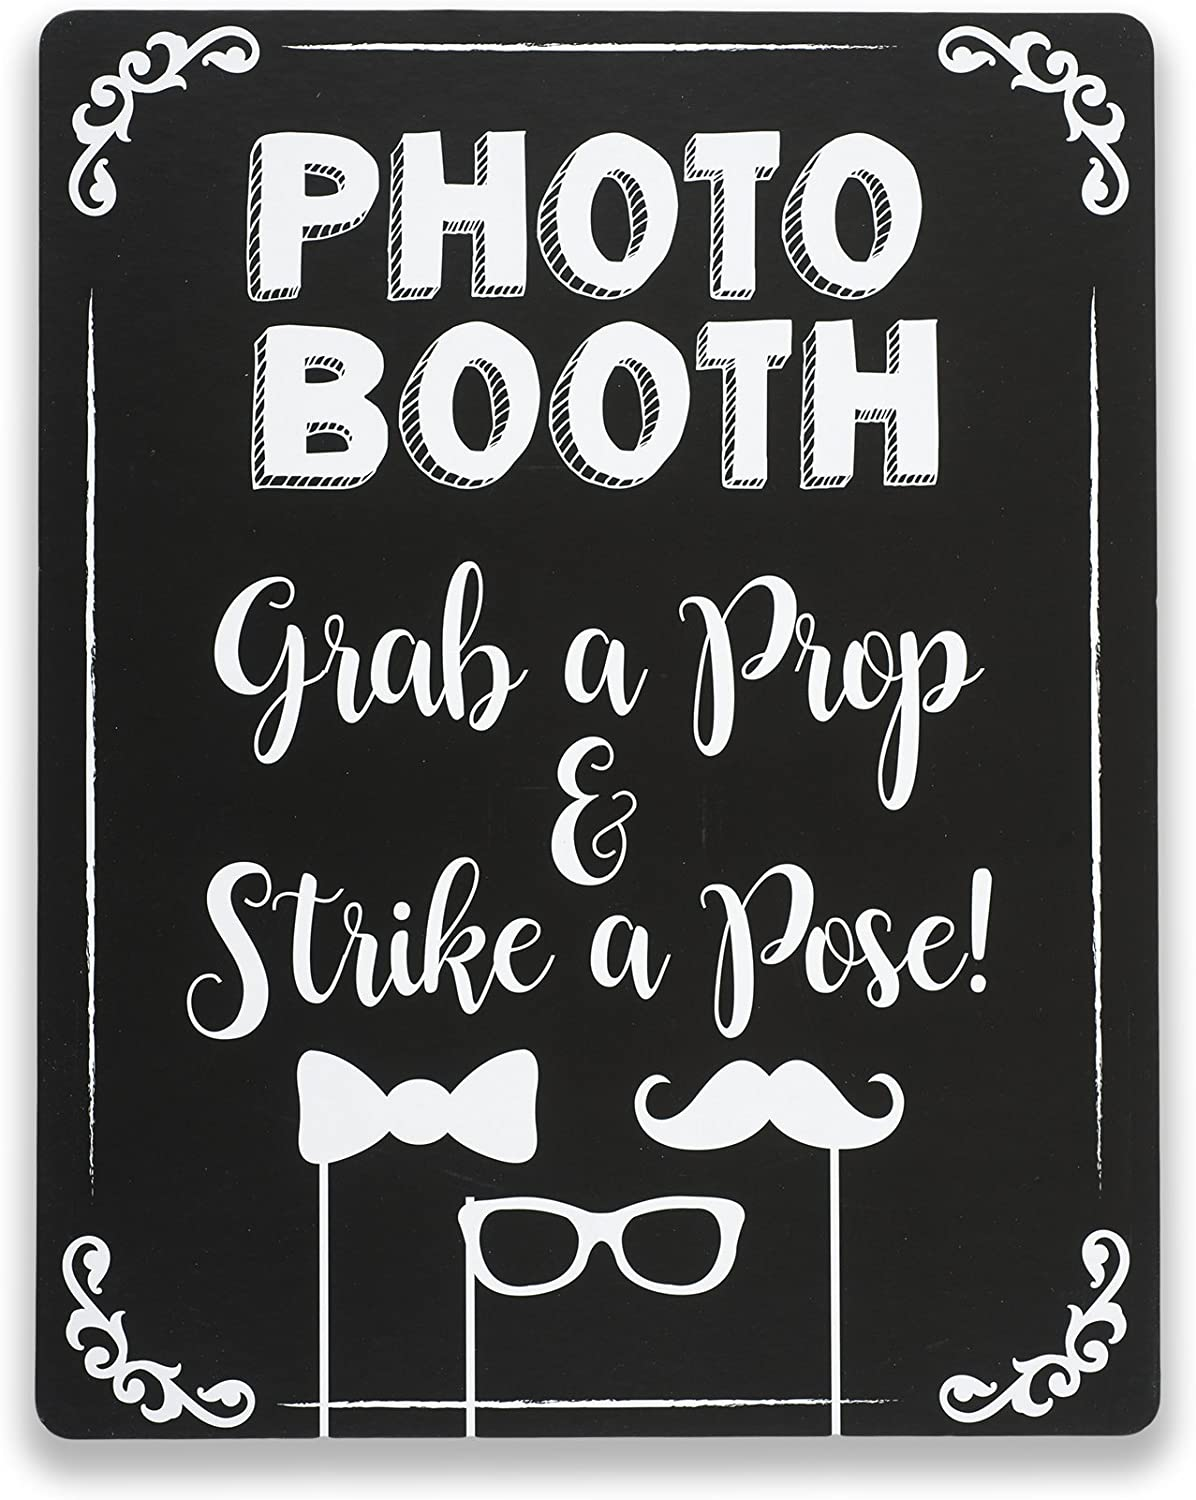 Photo Booth White Board Signs for Weddings and Parties Whiteboard Photobooth XL Whiteboard Photo Booth Signs White Board Photo Booth